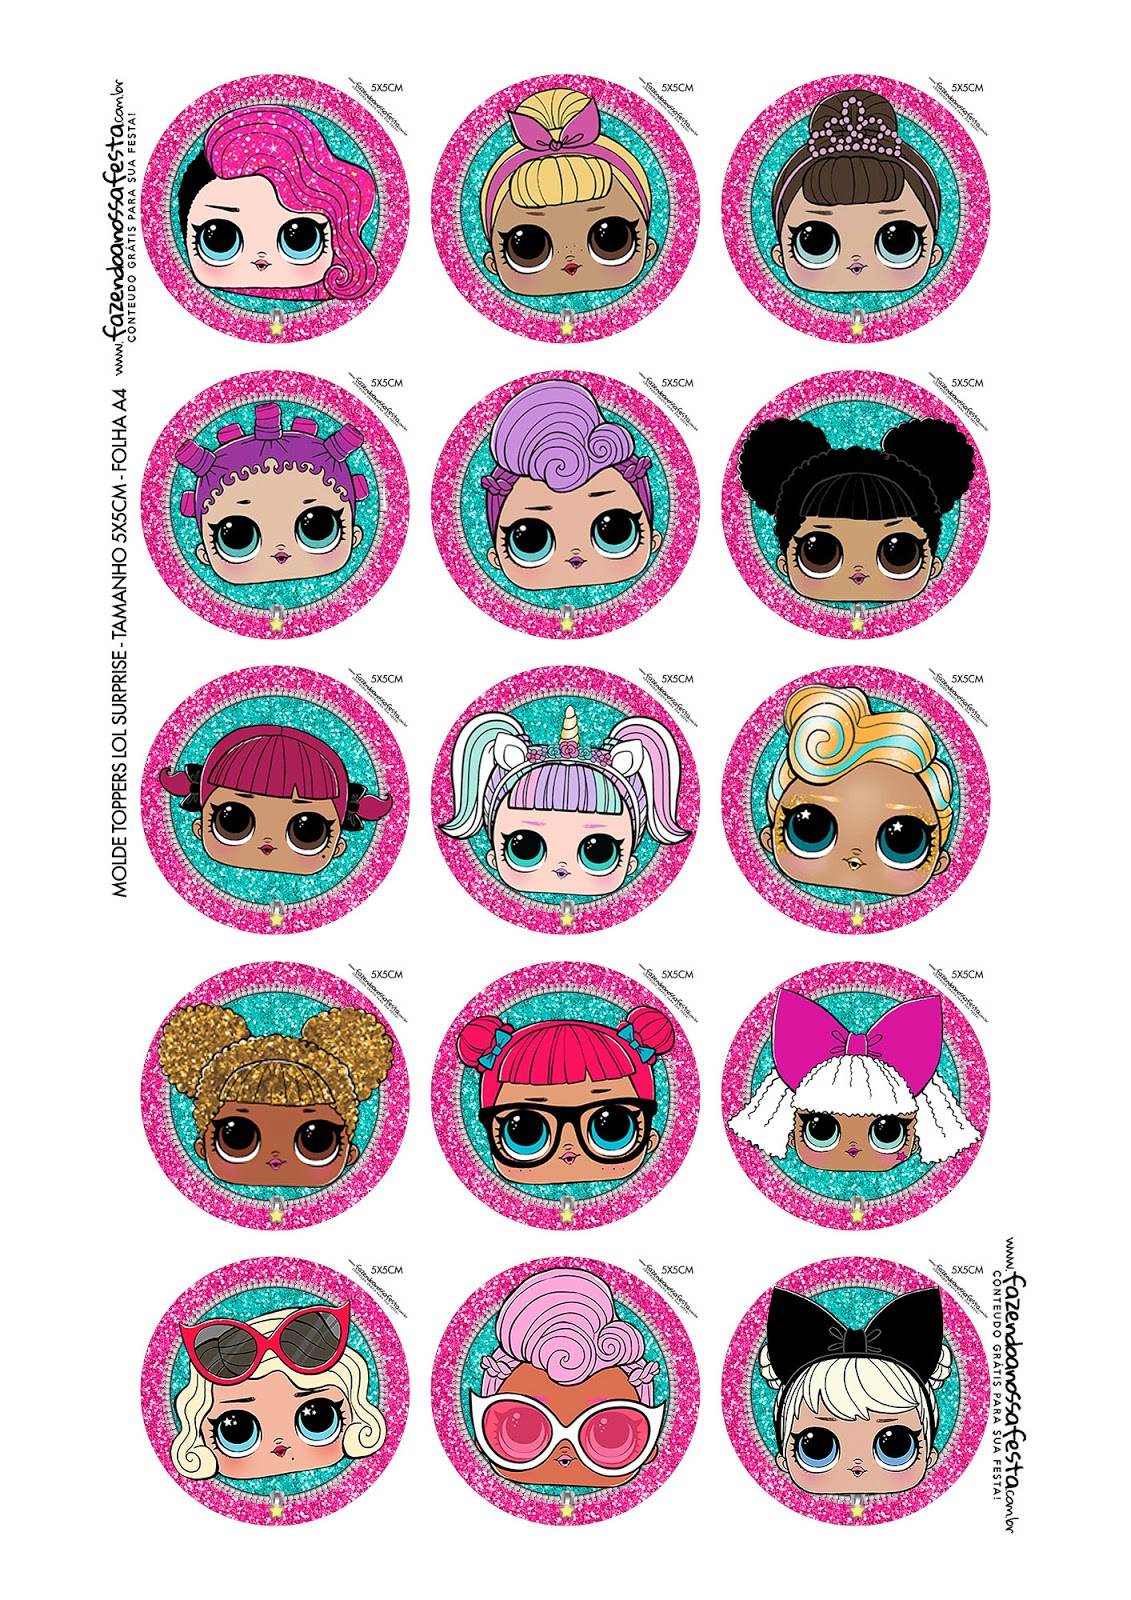 Lol Surprise Free Printable Toppers For Cupcakes Oh My Fiesta